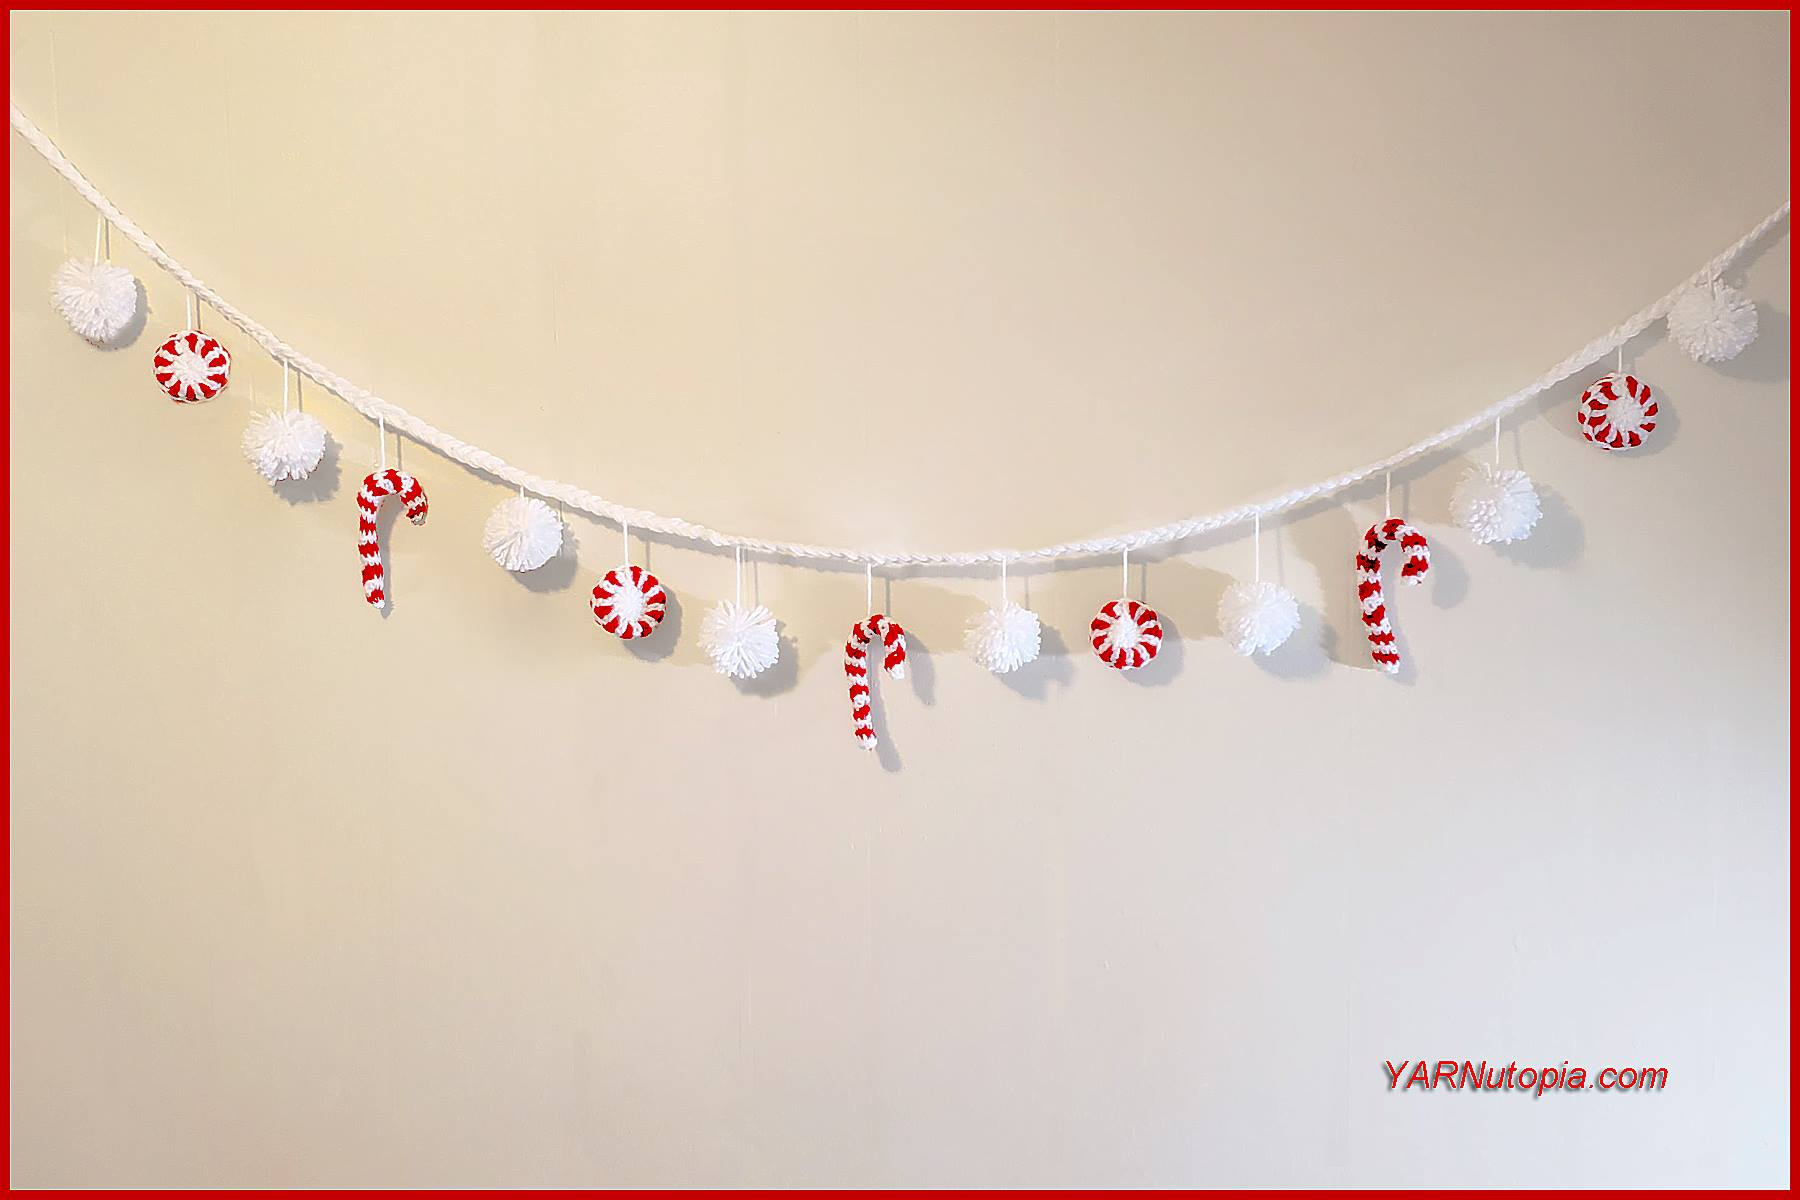 12 Days Of Christmas Peppermint Candy Garland Yarnutopia By Nadia